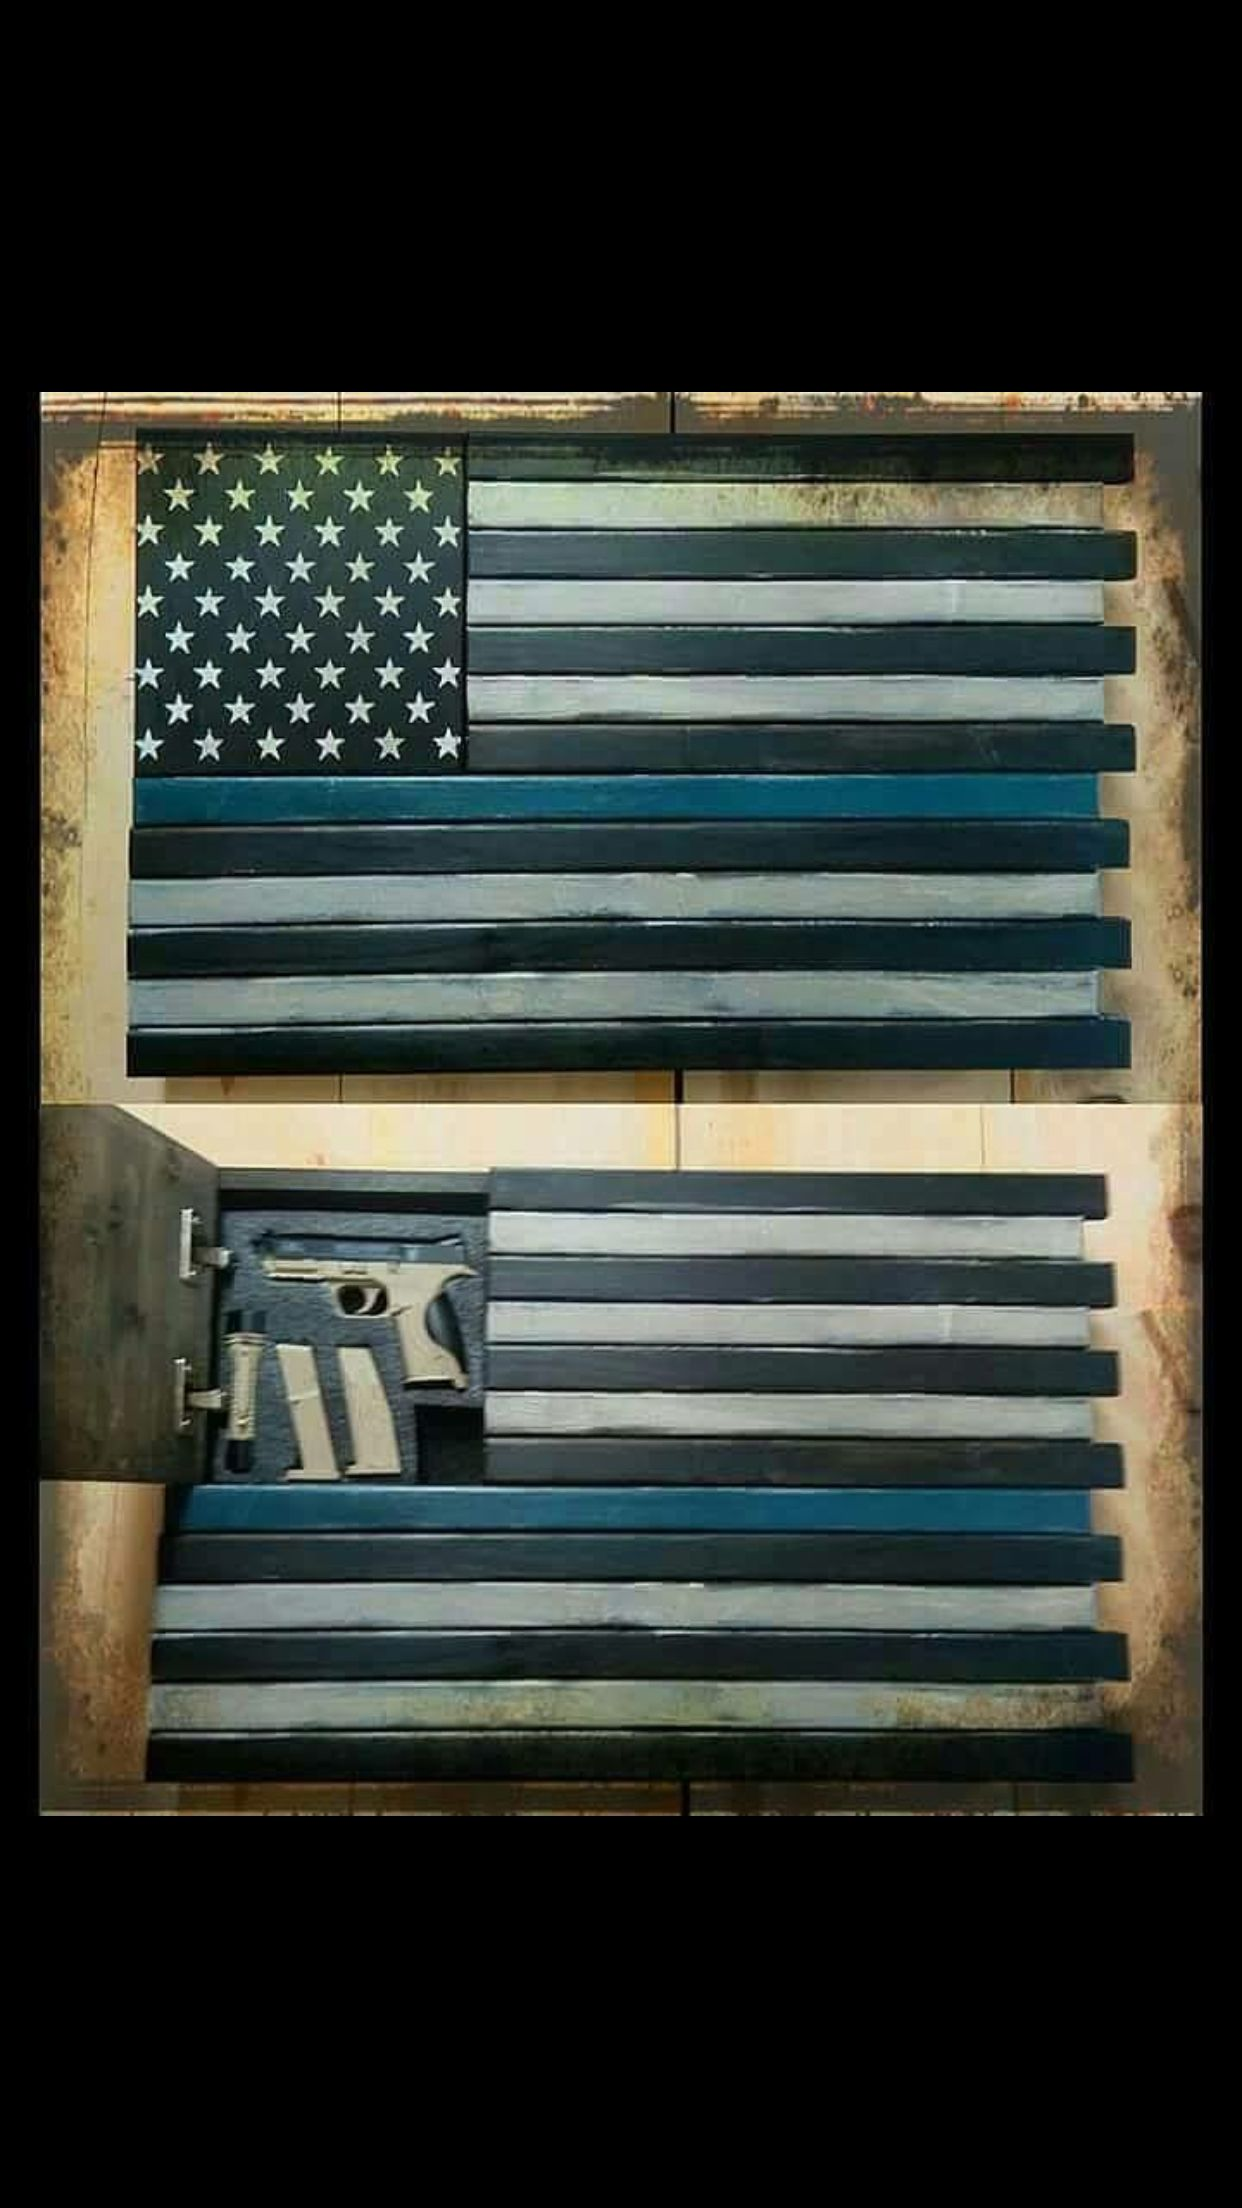 Hidden Weapons In The American Flag Projects In 2019